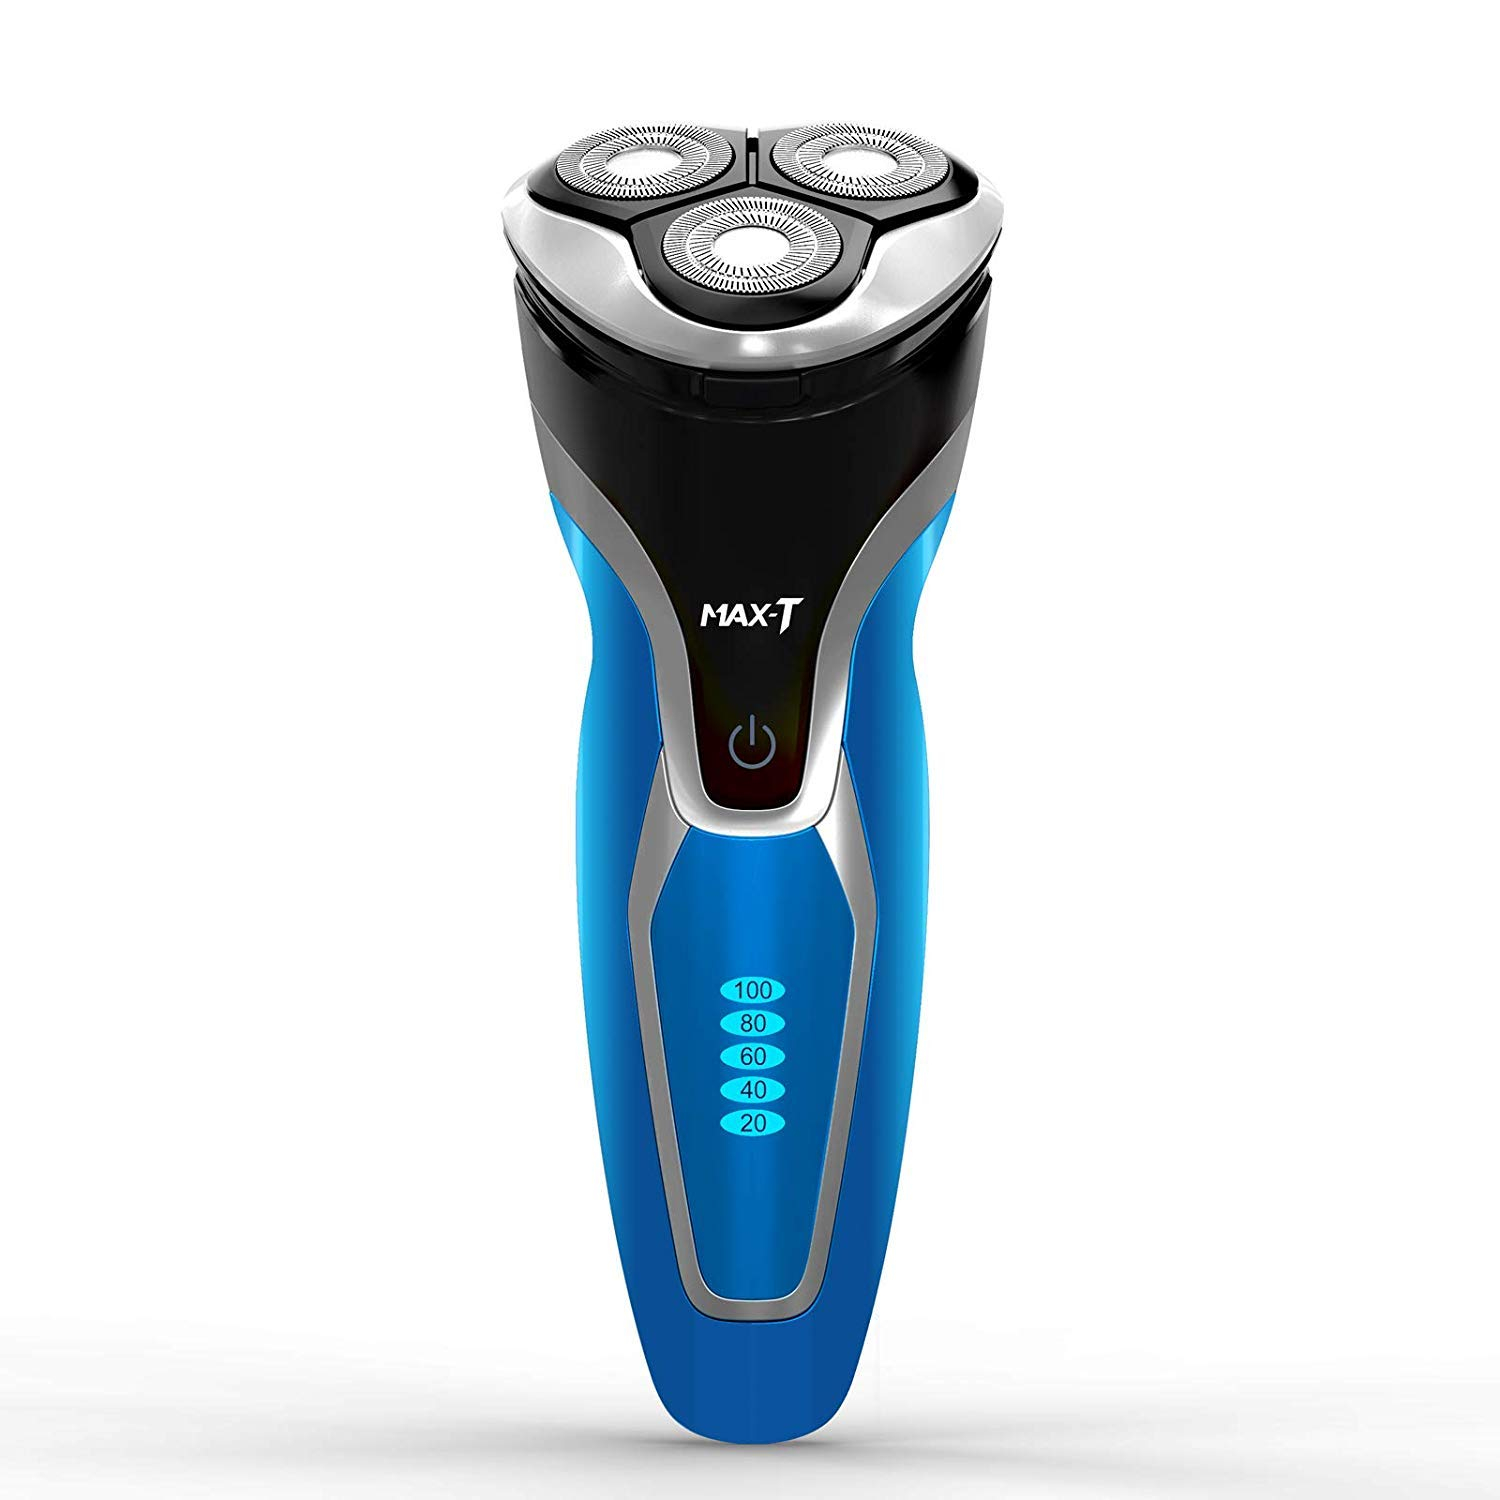 Electric Shaver Razor for Men, MAX-T Quick Charge Wet Dry Rotary Shaver with Pop Up Trimmer, IPX7 100 Waterproof 7109 with Adapter Charger